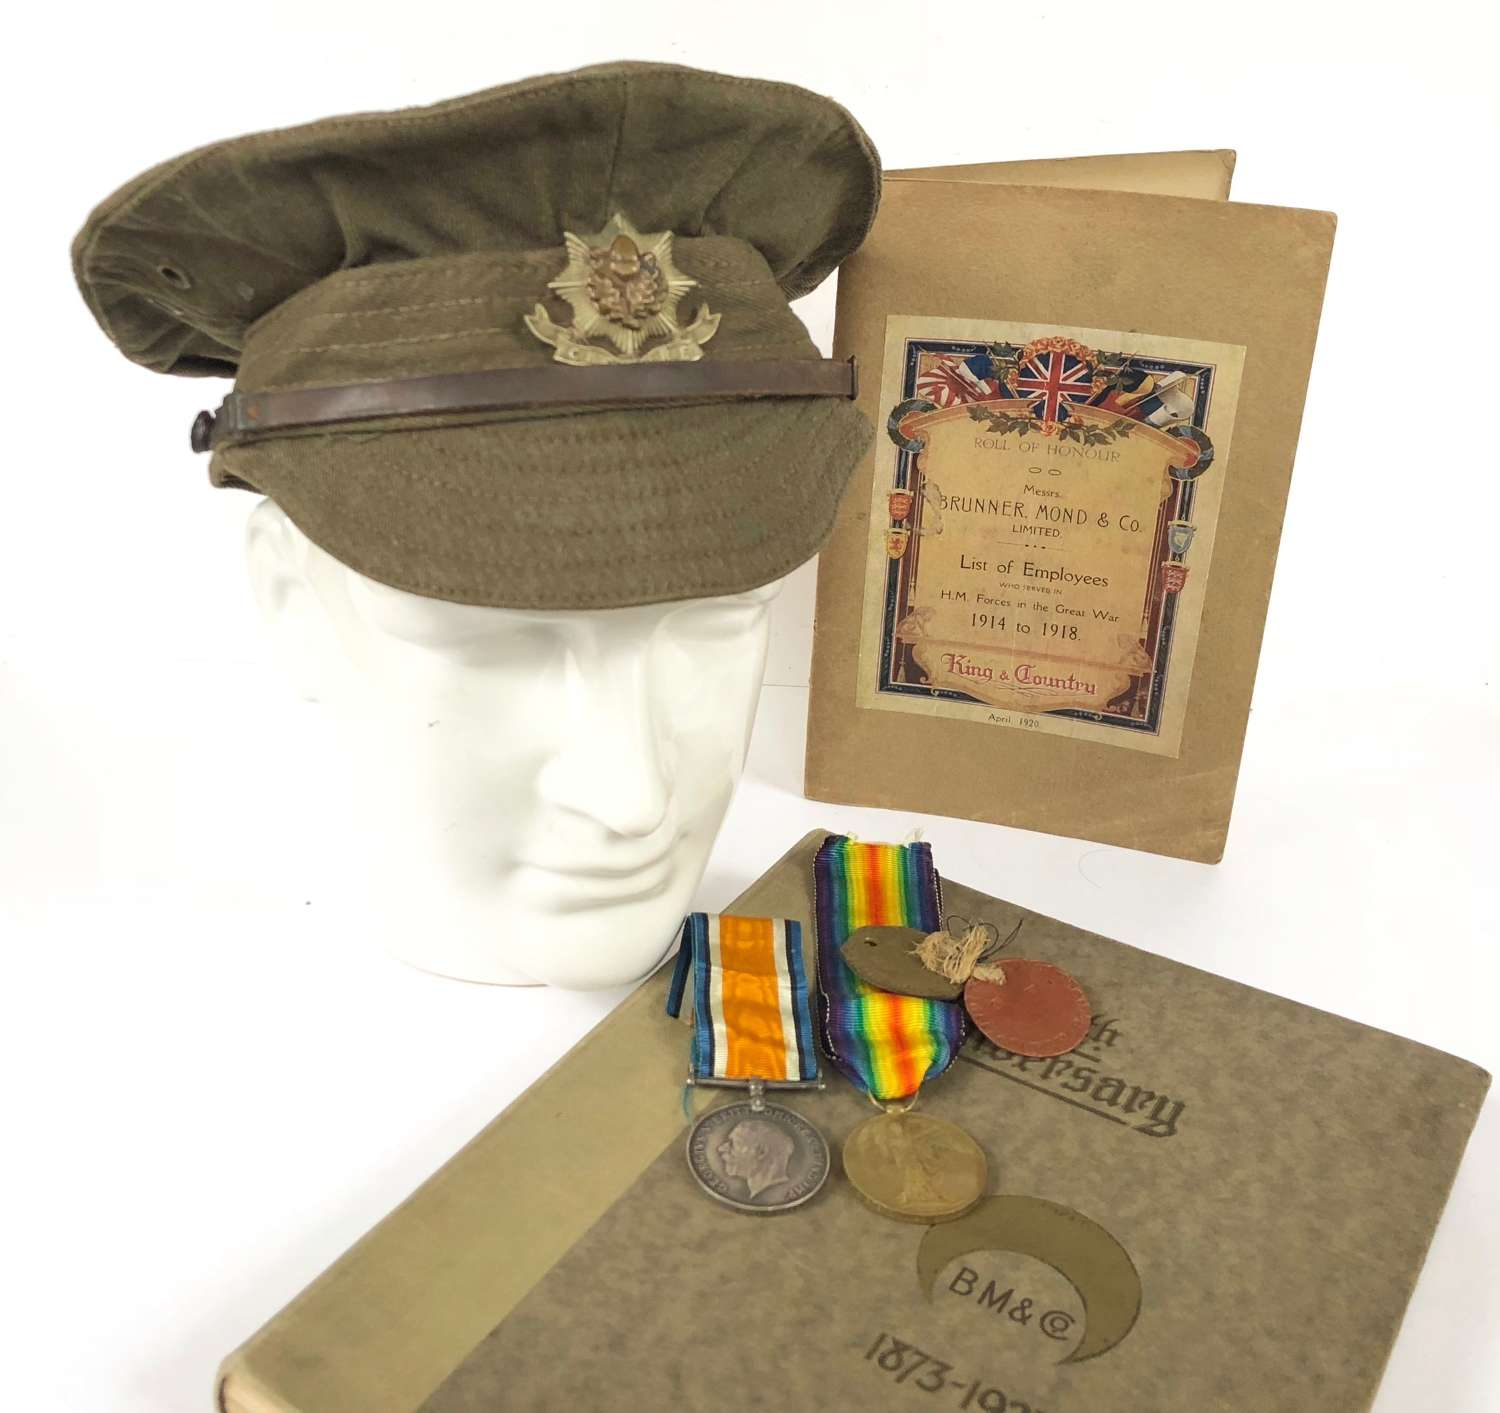 WW1 5th Bn Cheshire Regiment Attributed Trench Cap, Medals, Dog Tags.